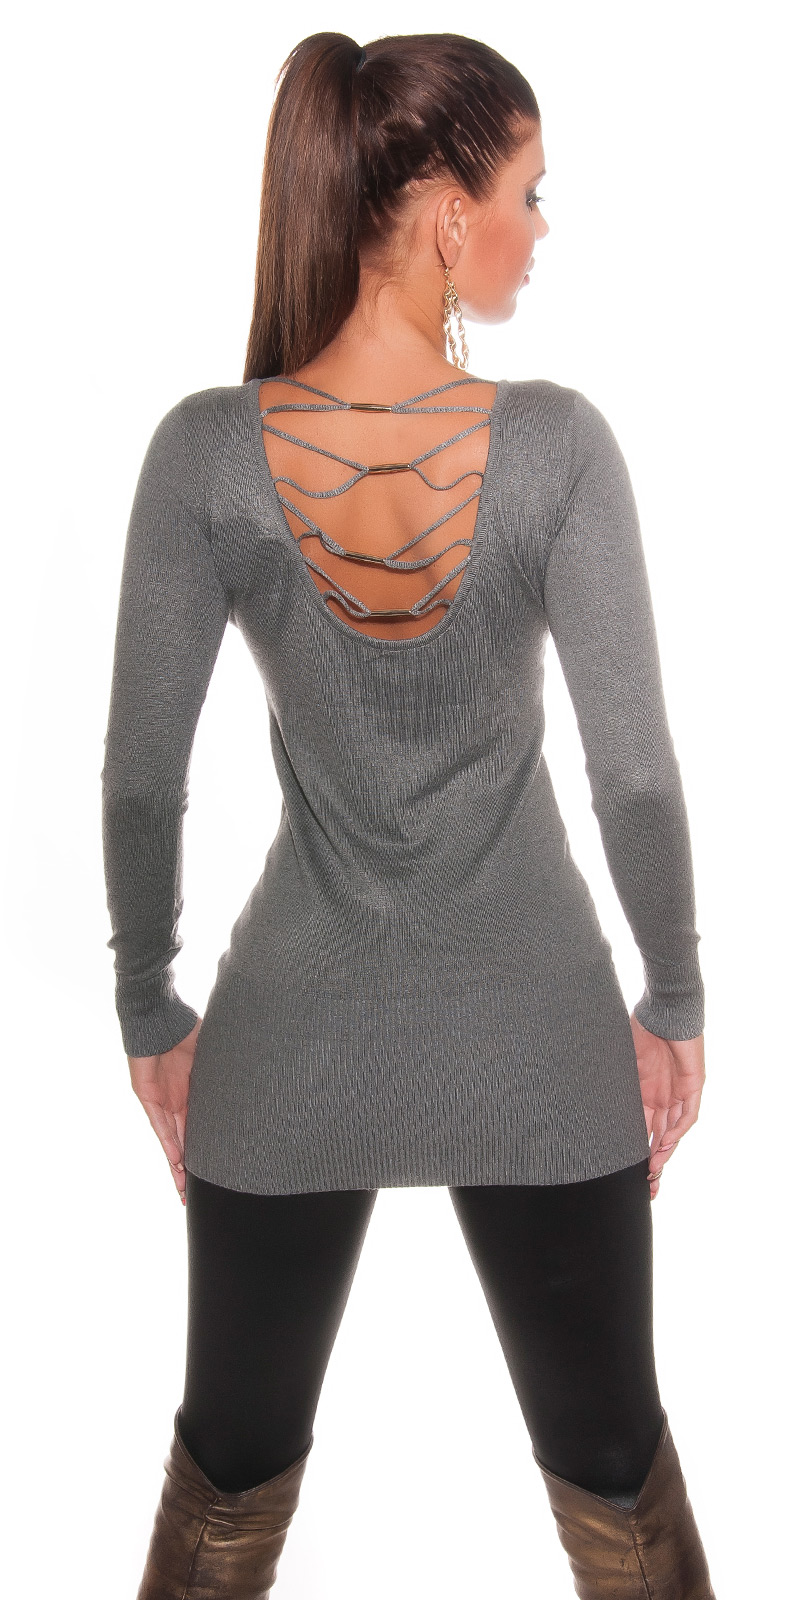 oolong_pullover_nyork_with_rhinestones__color_grey_size_einheitsgroesse_0000pu1272_grau_36_1